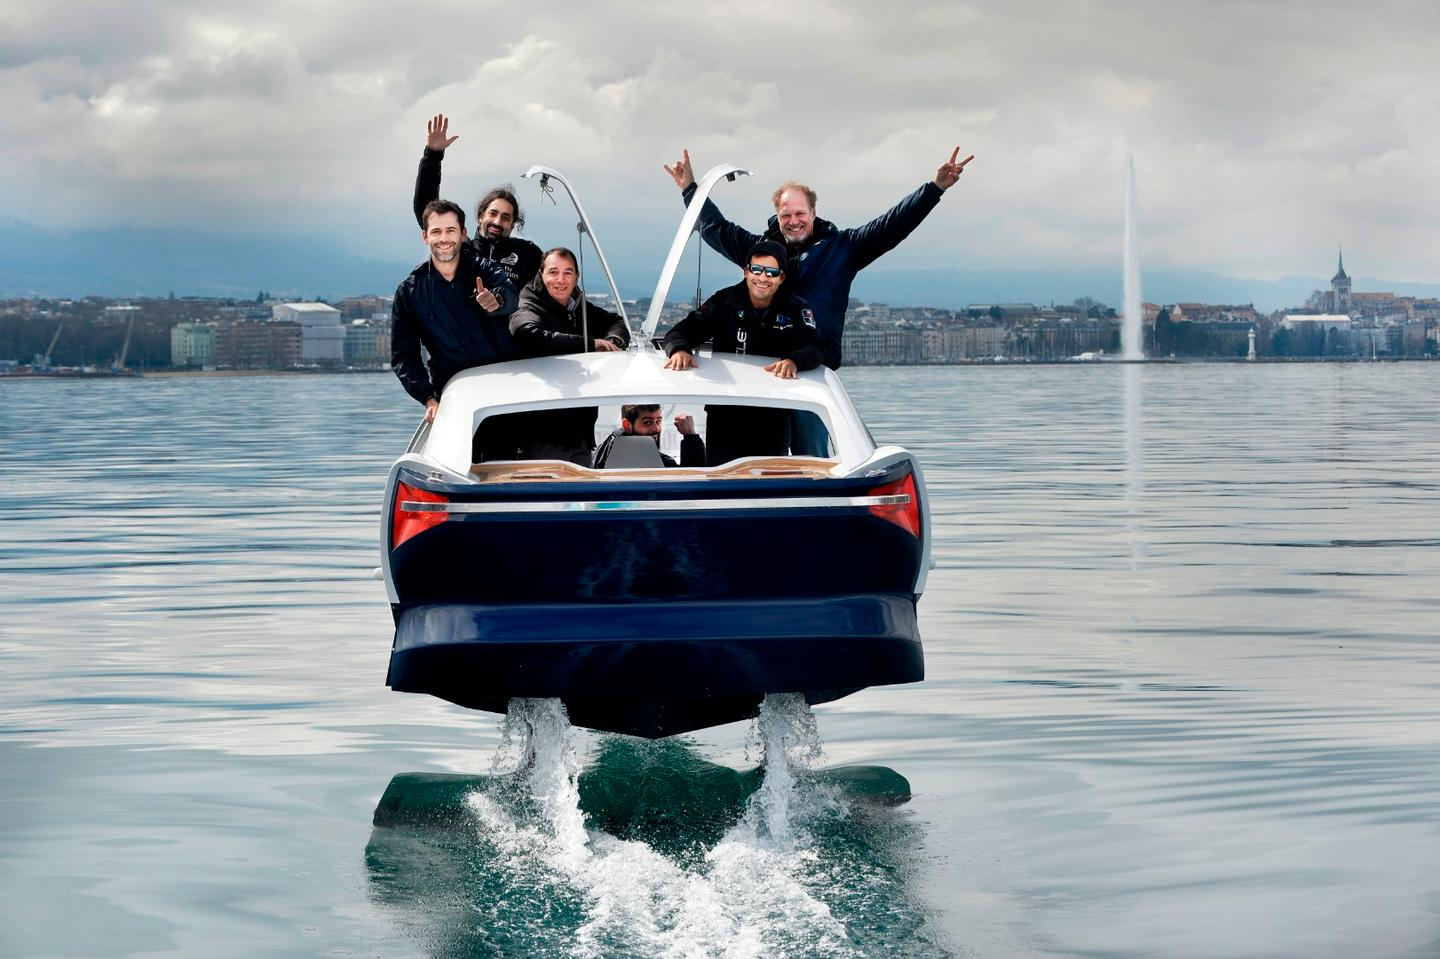 The Seabubbles team demonstrates how up to six people can fit into the Bubble Taxi